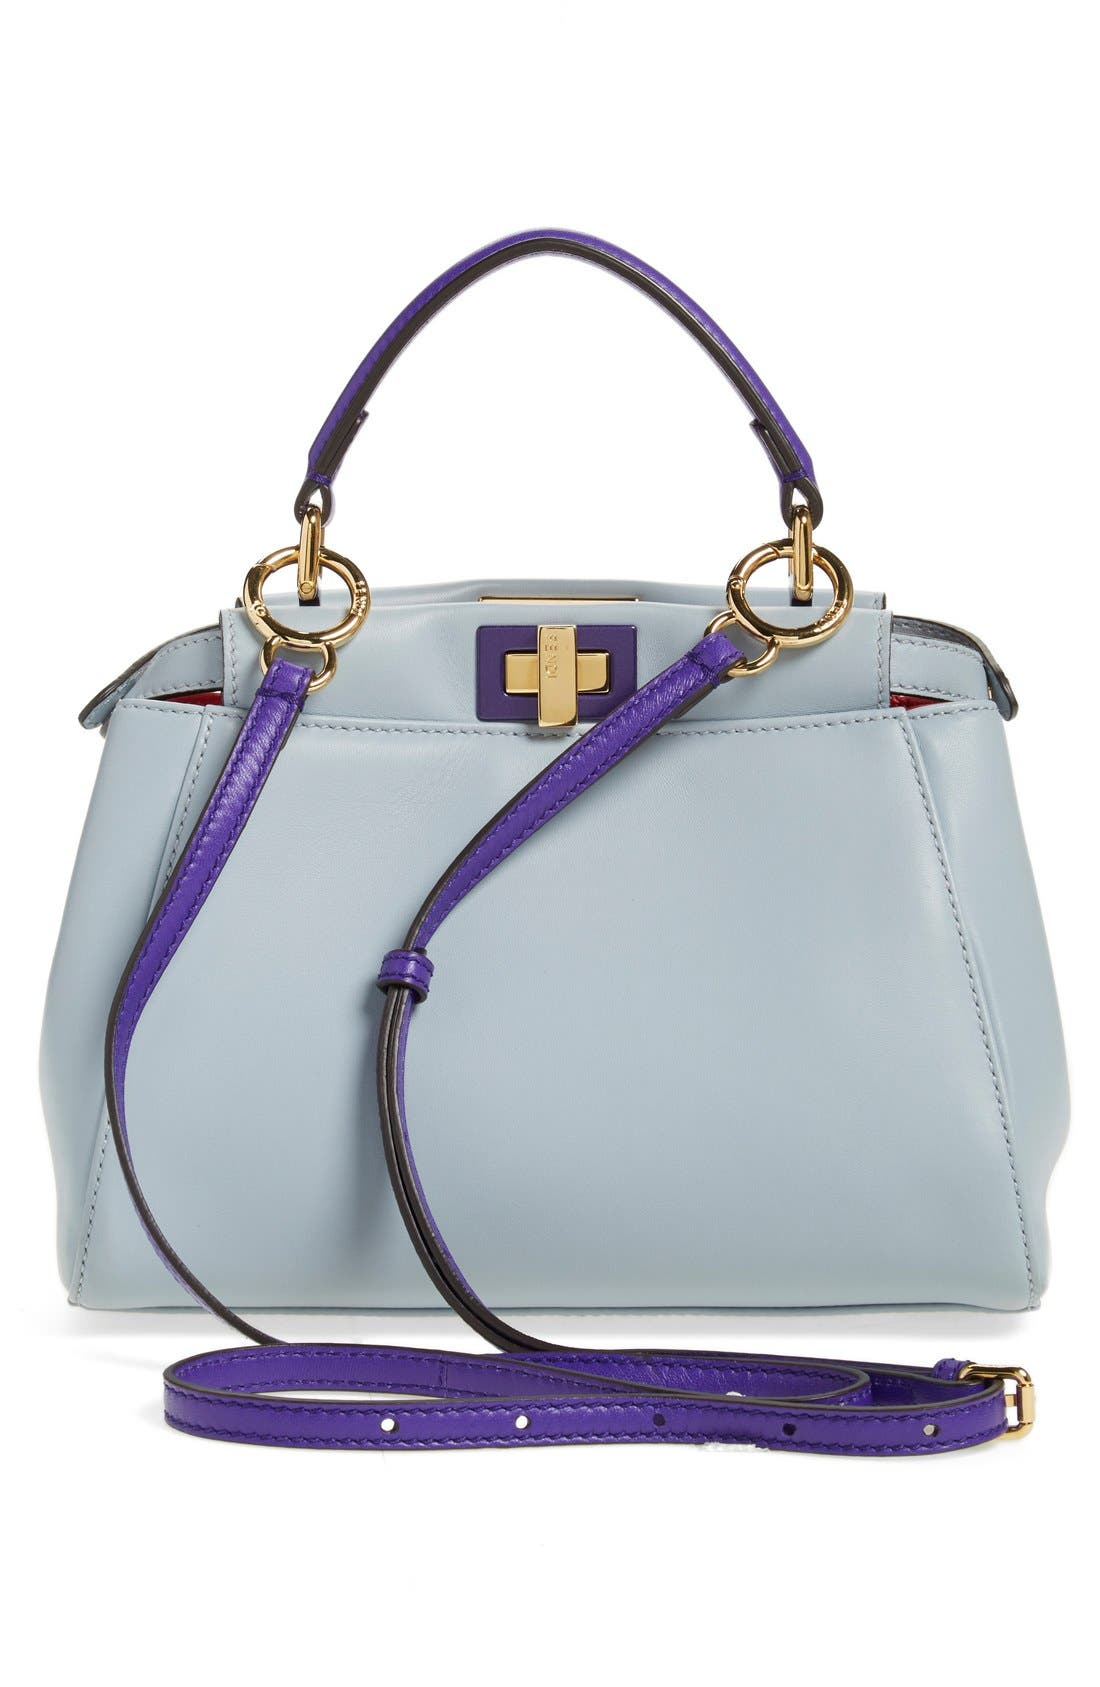 'Mini Peekaboo' Colorblock Leather Bag,                             Main thumbnail 1, color,                             Powder/Purple Ruby